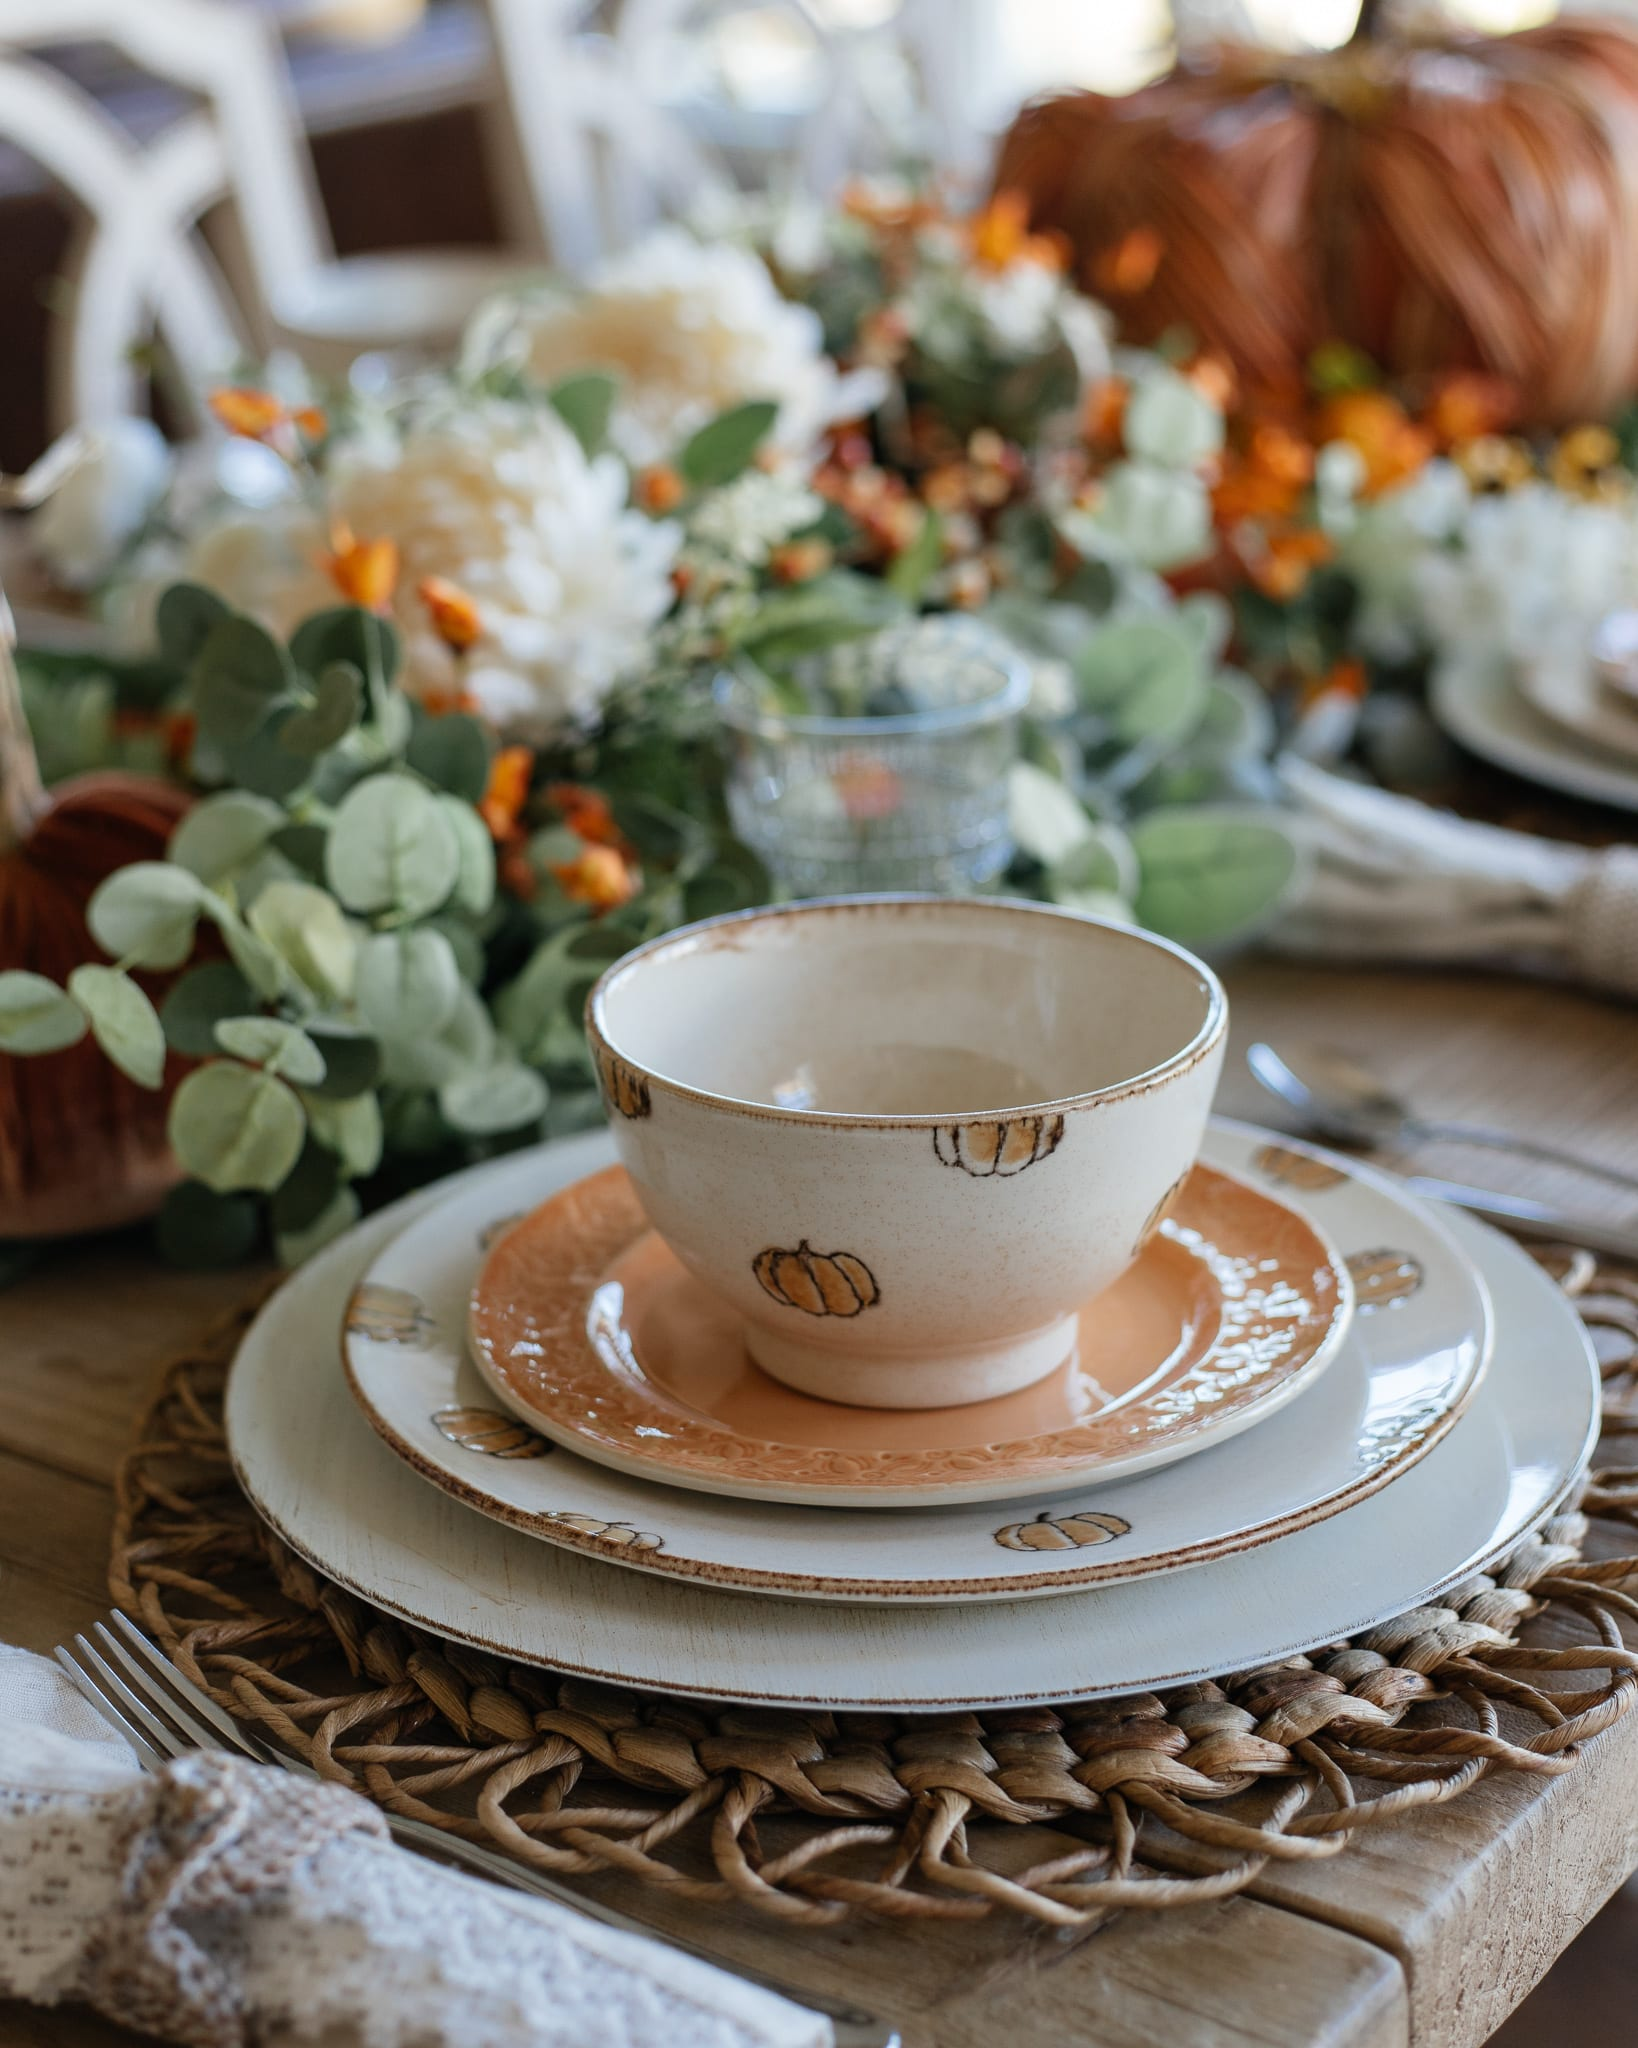 pumpkins tablescape table setting table decor fall table fall decor entertaining dinnerware fall flowers